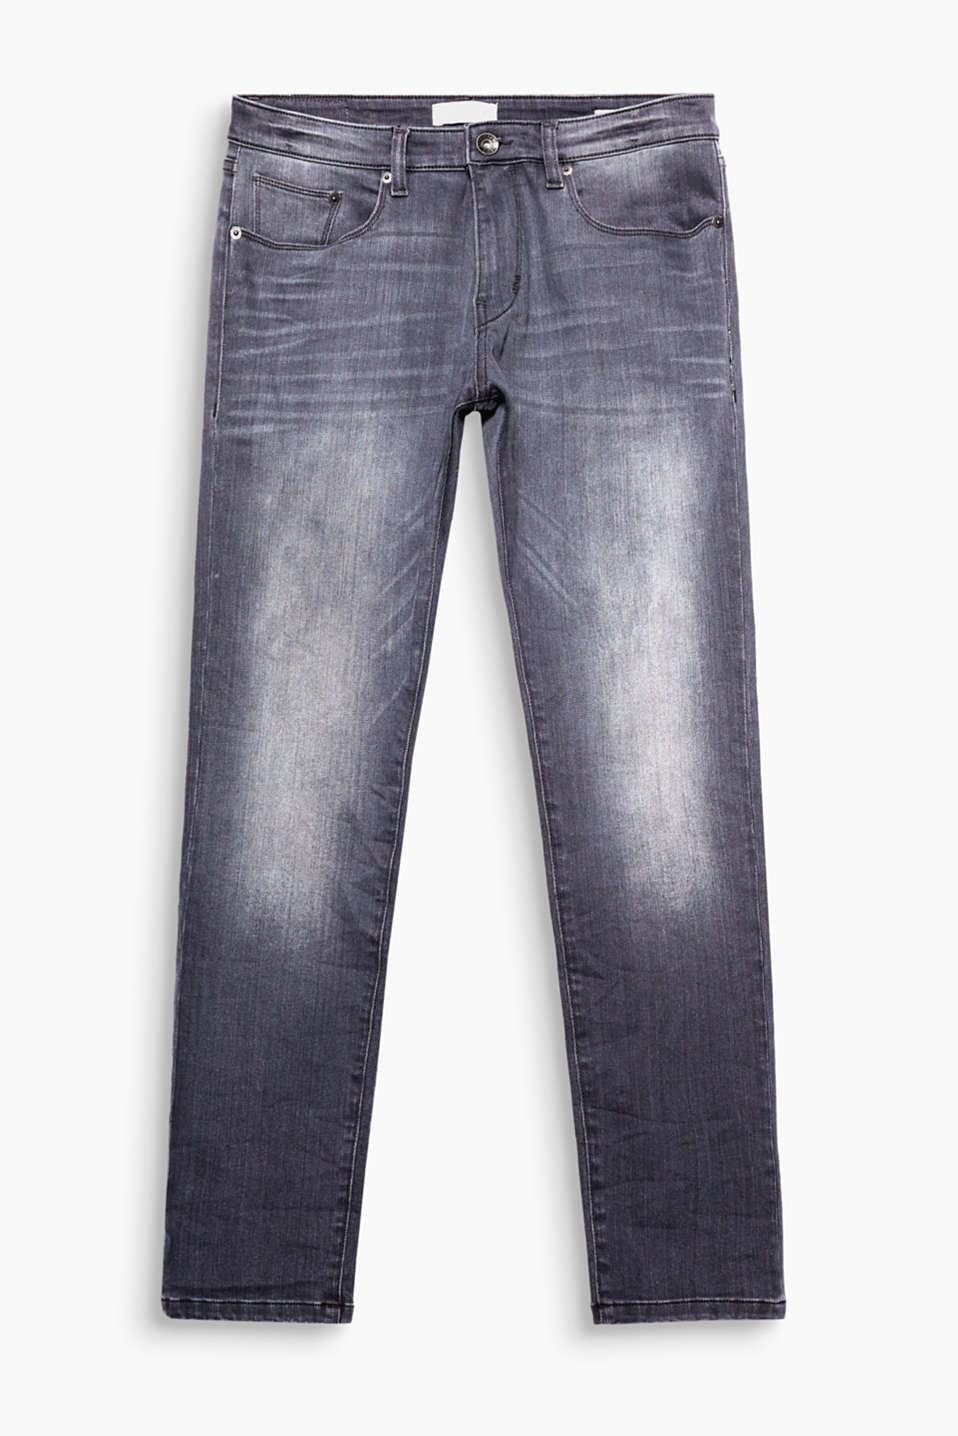 We love Used Washed Denim! Die authentischen Wascheffekte geben diese 5-Pocket-Jeans ihren coolen Look,